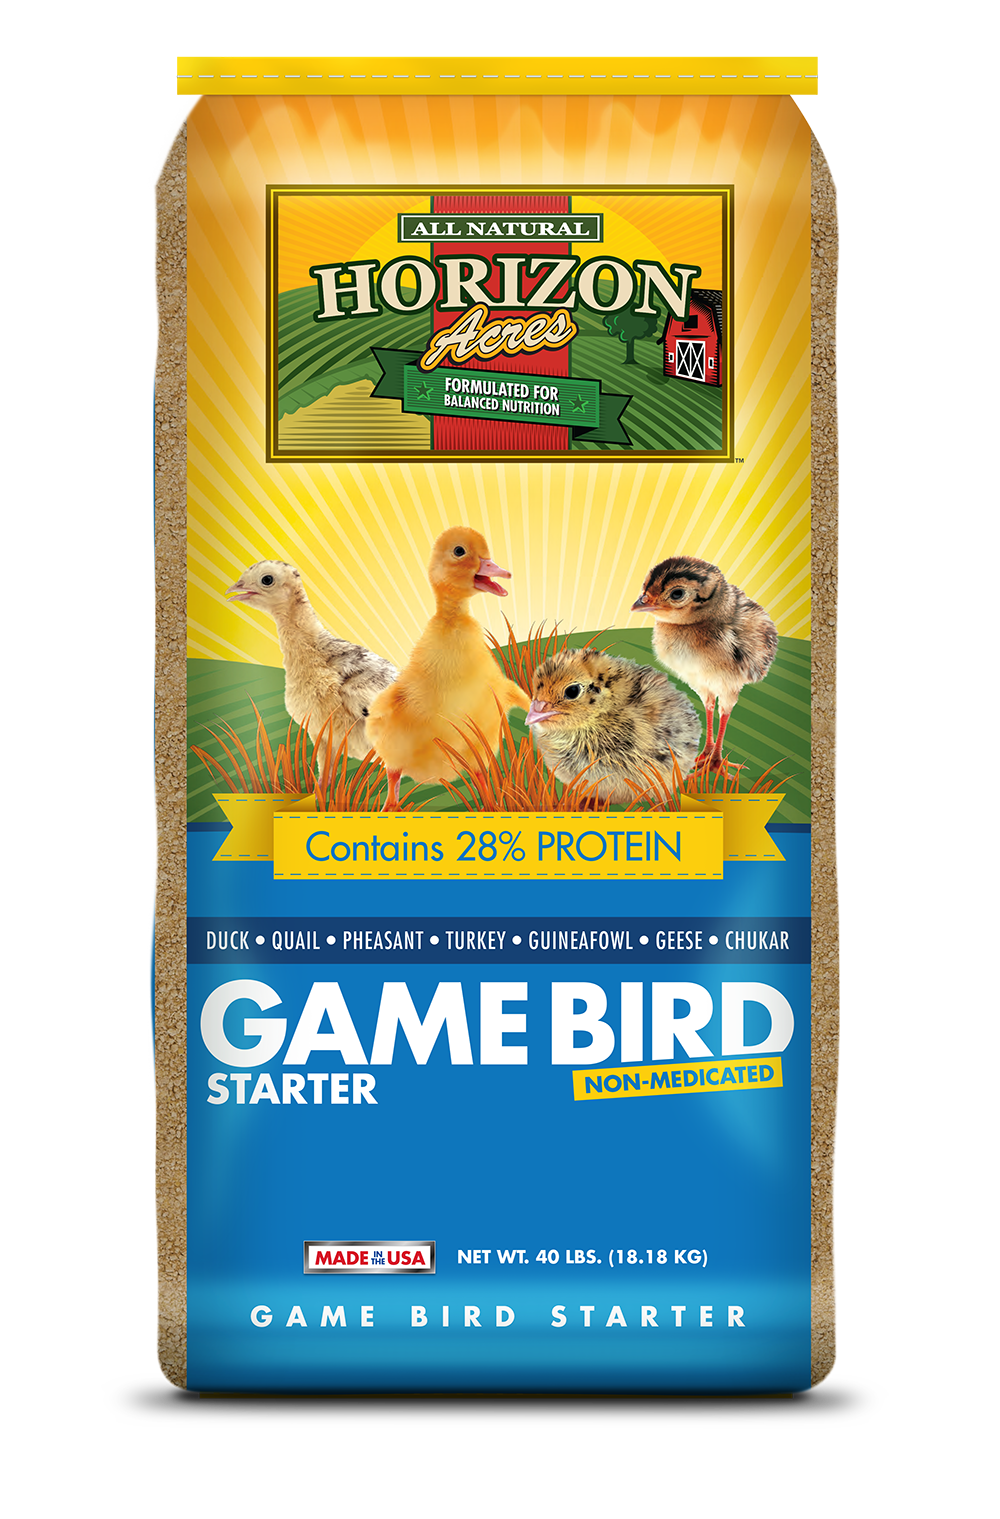 Game Bird Starter Horizon Acres